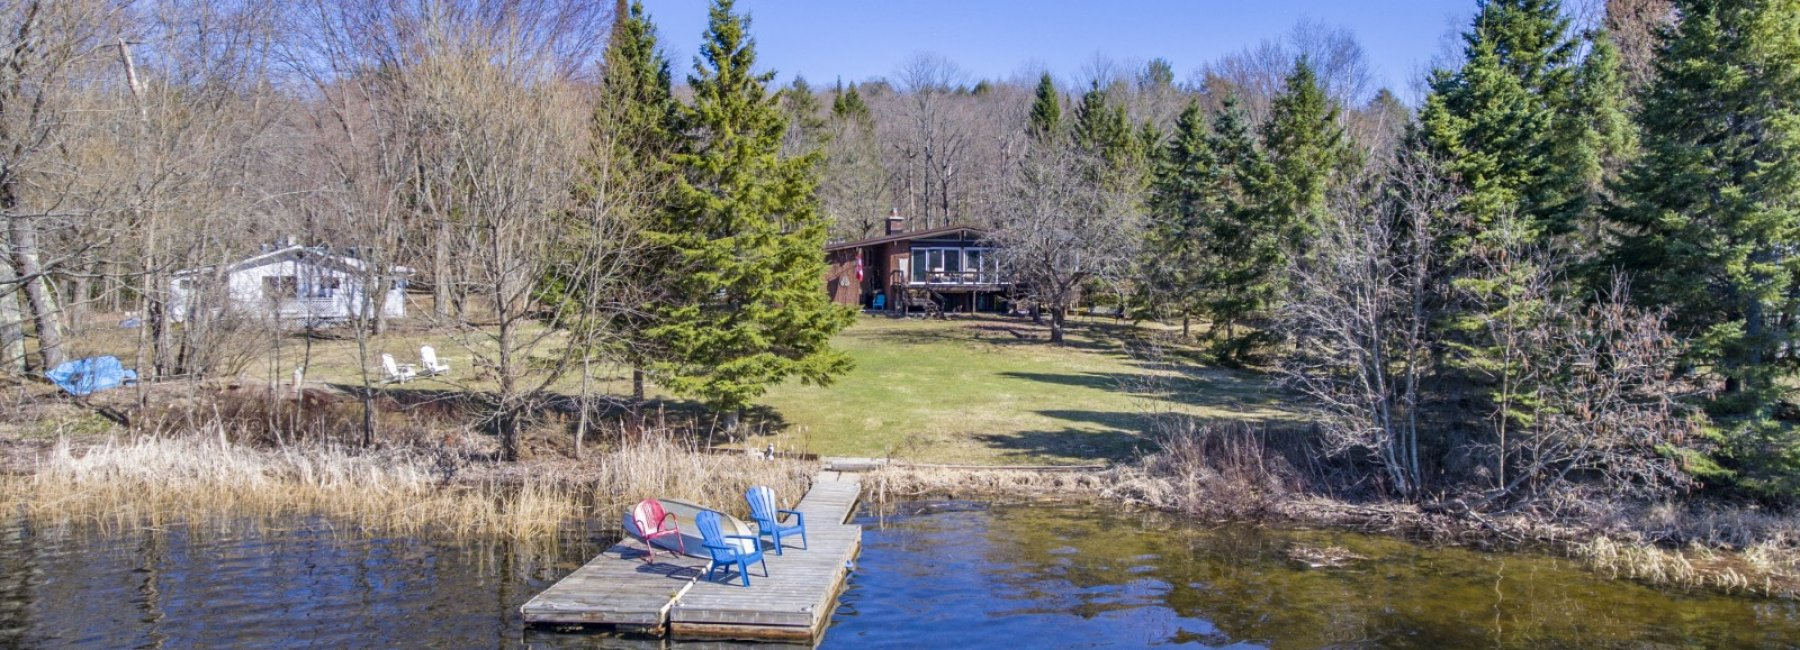 1171 Grass Lake Road, Haliburton - Grass Lake